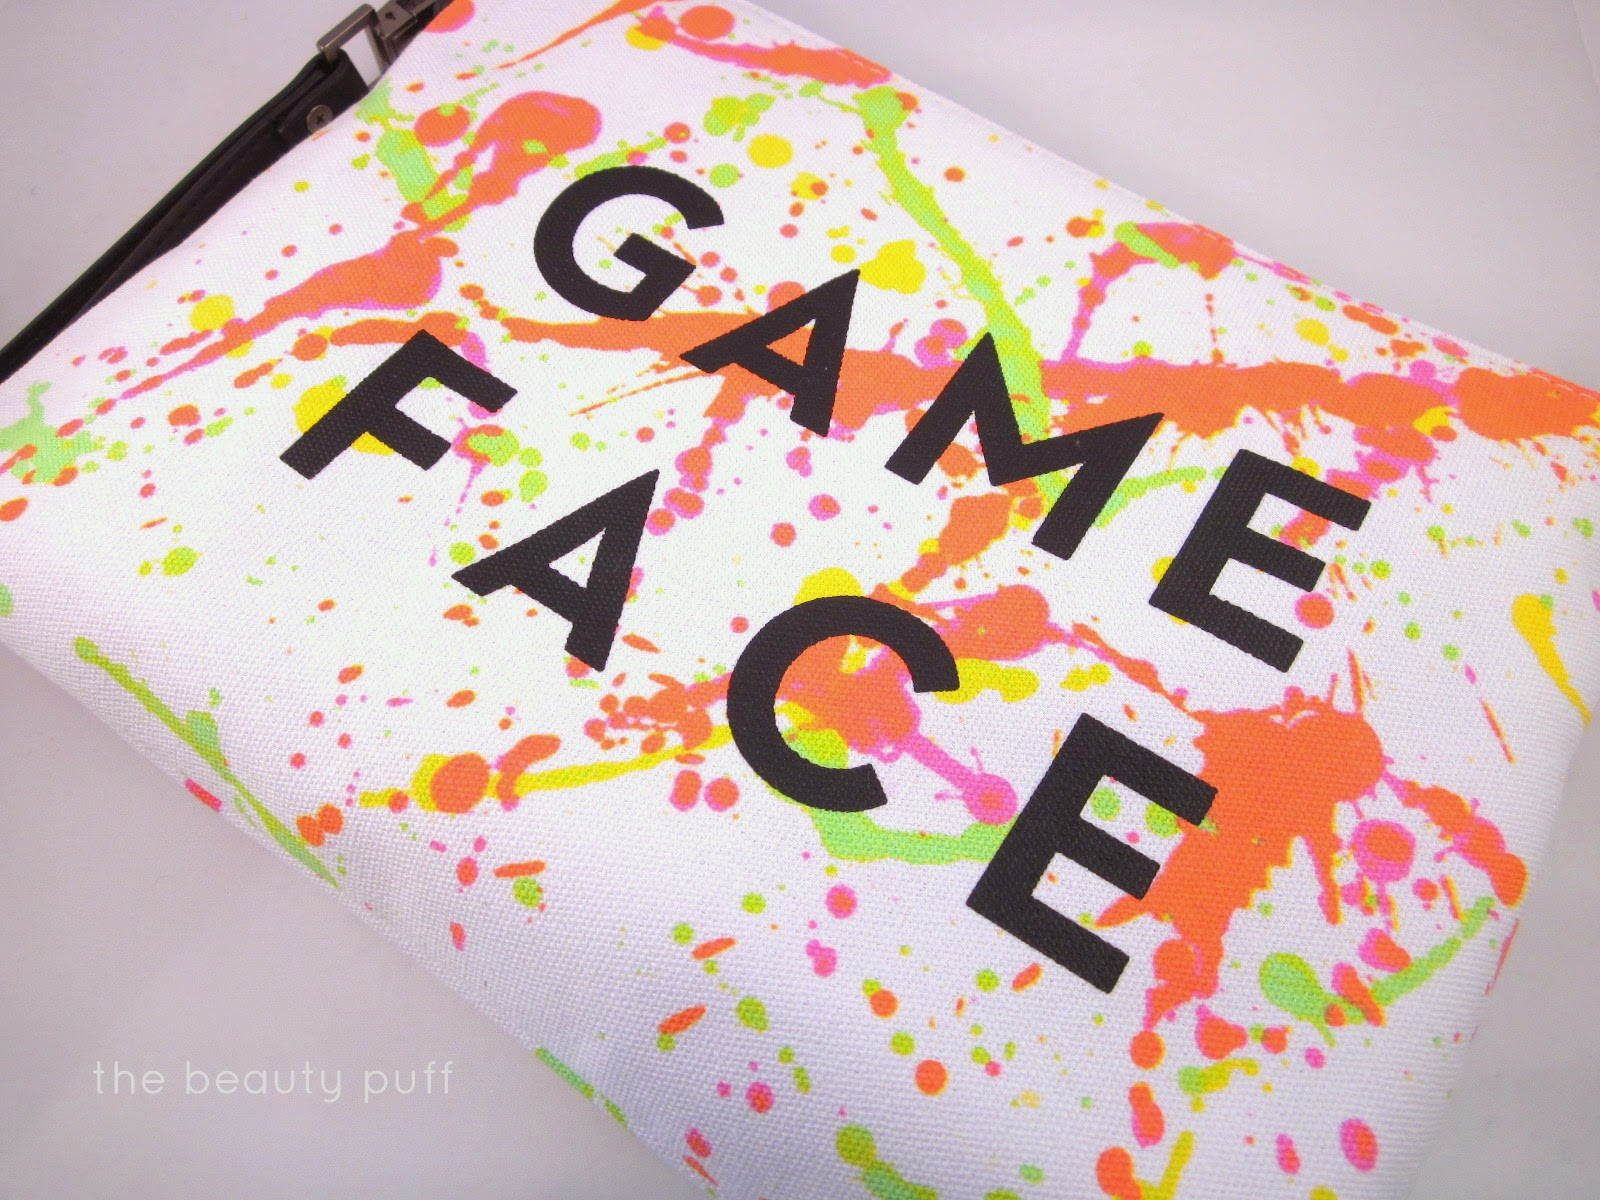 milly game face bag beauty.com - the beauty puff